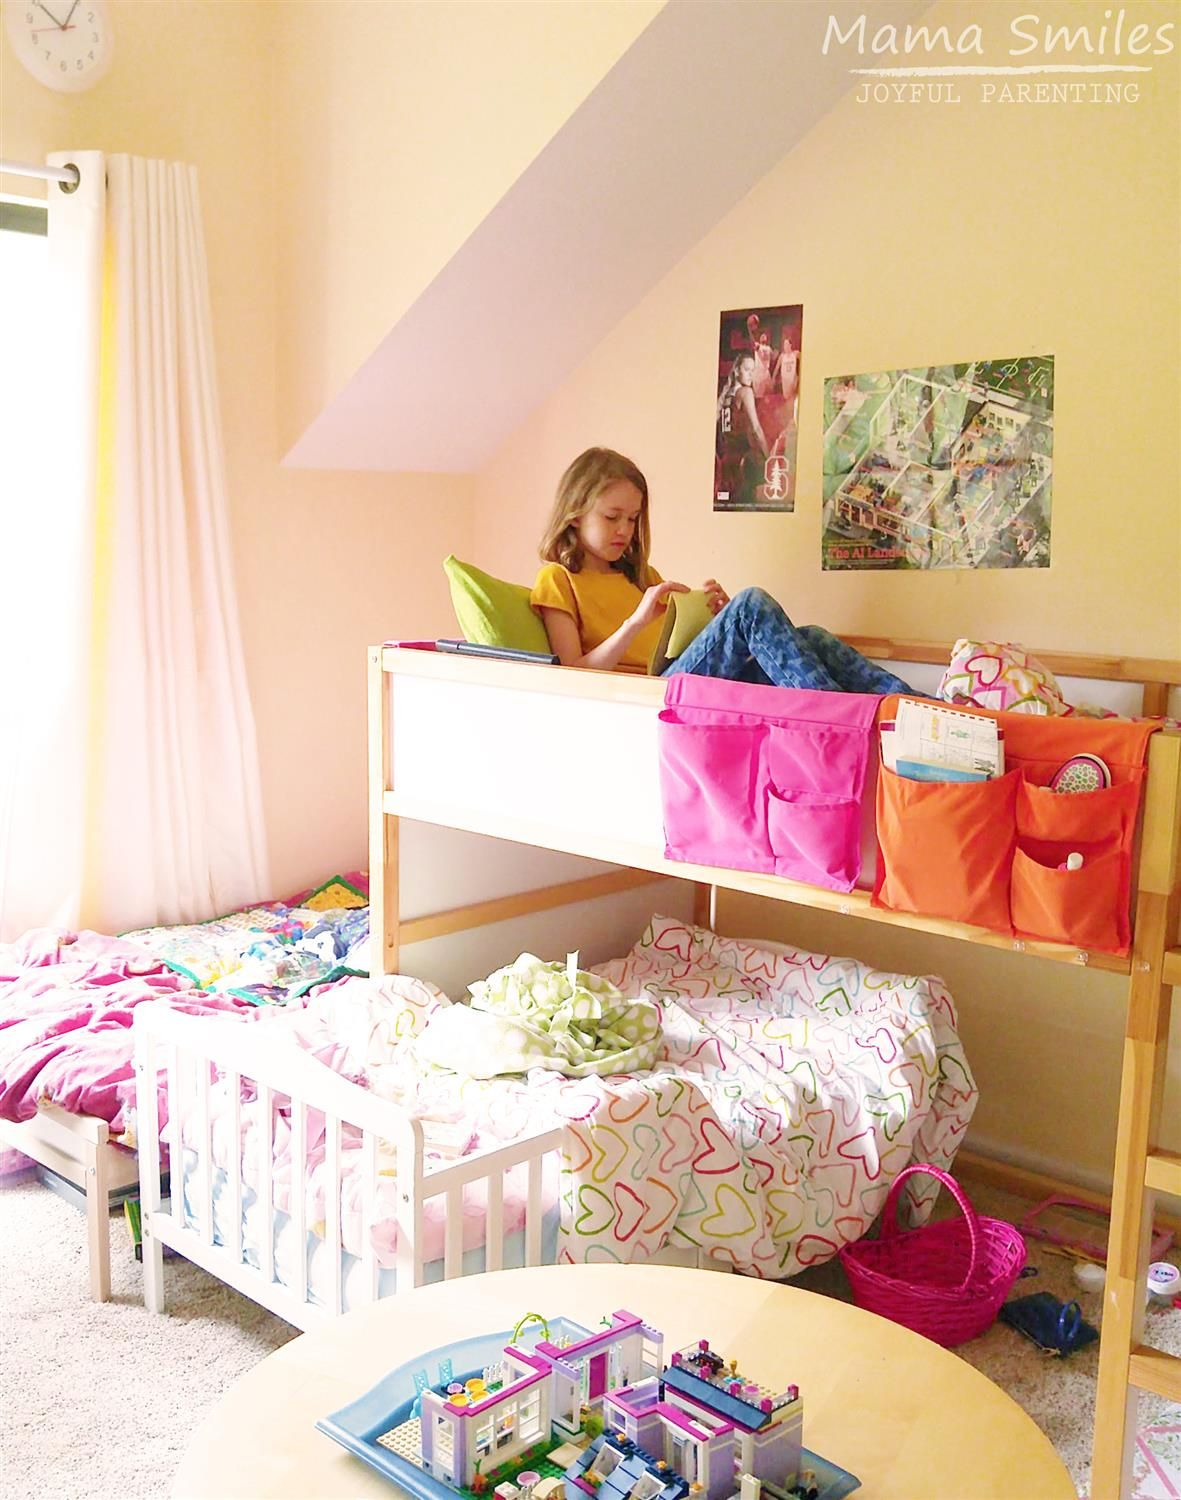 Shared Sibling Bedrooms And Family Small Space Living My Blog Mama Smiles Joyful Parenting